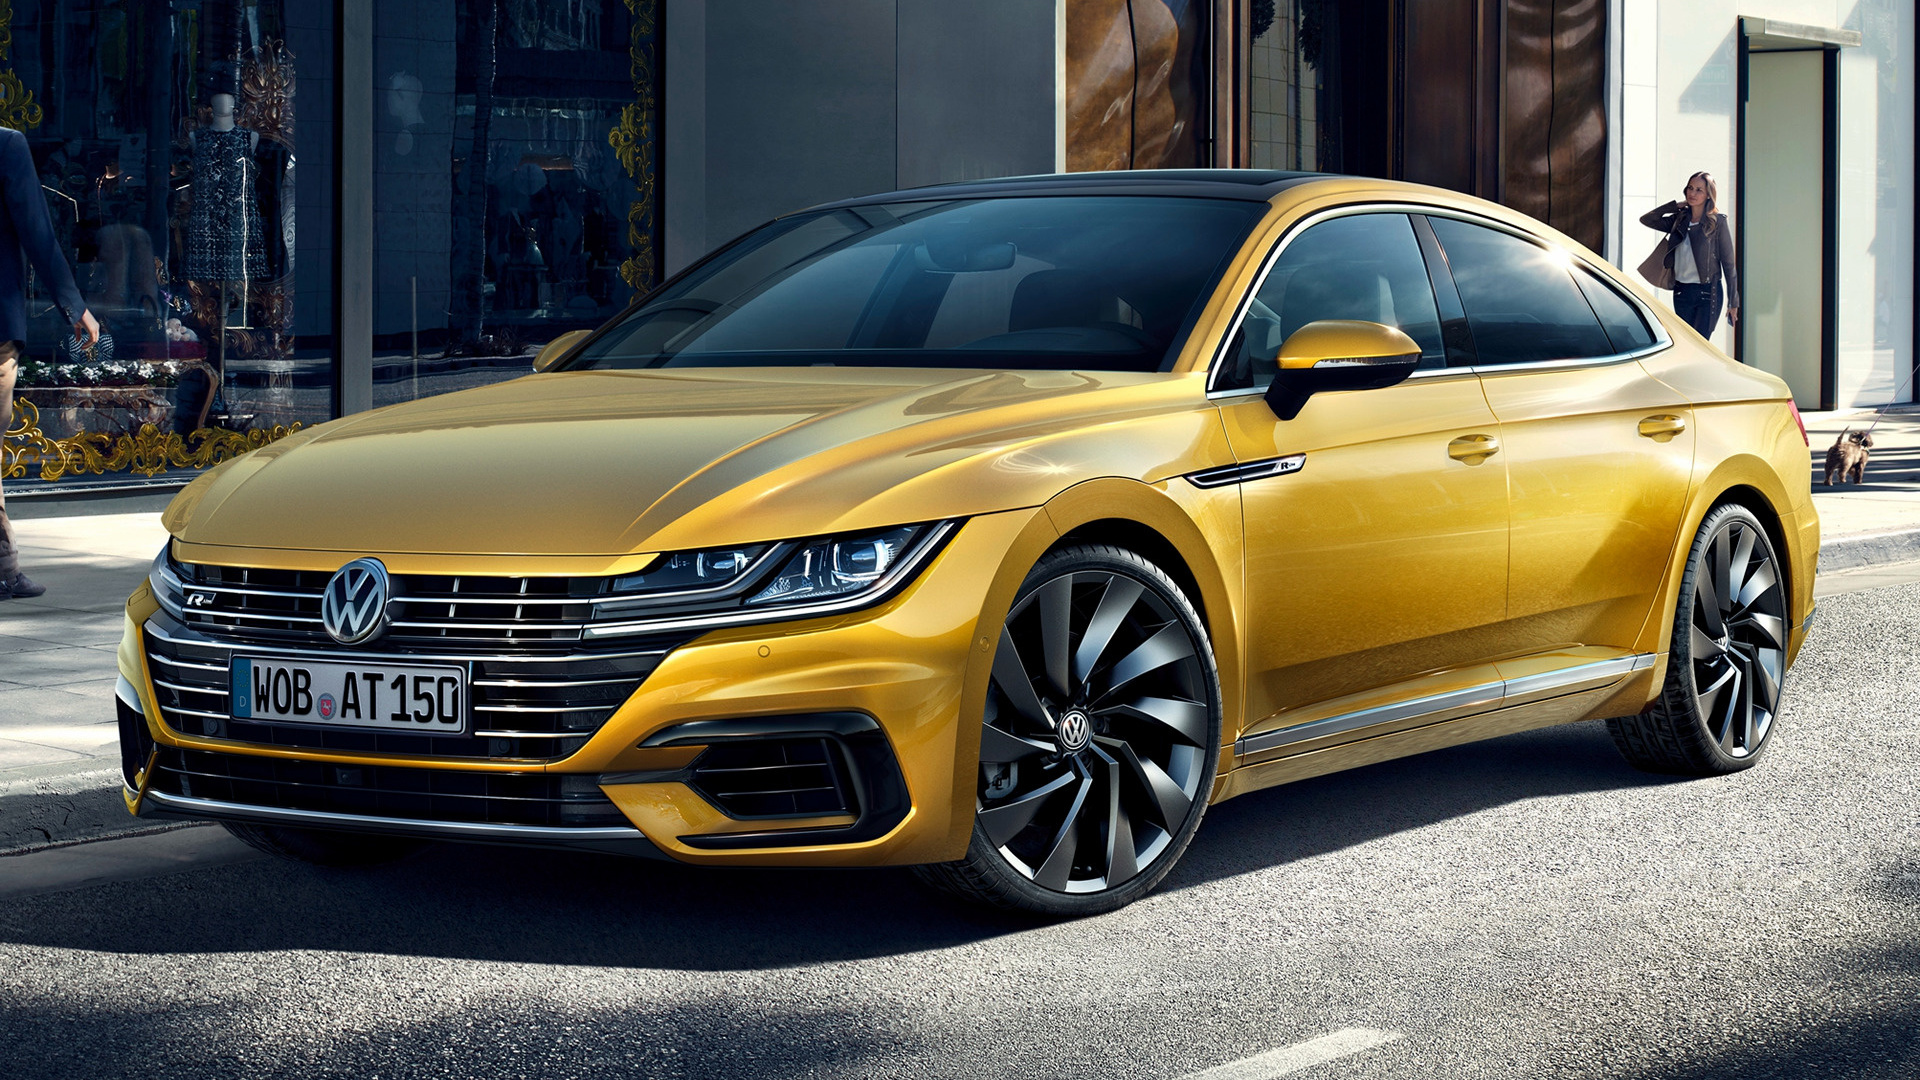 2017 Volkswagen Arteon R Line Wallpapers And Hd Images